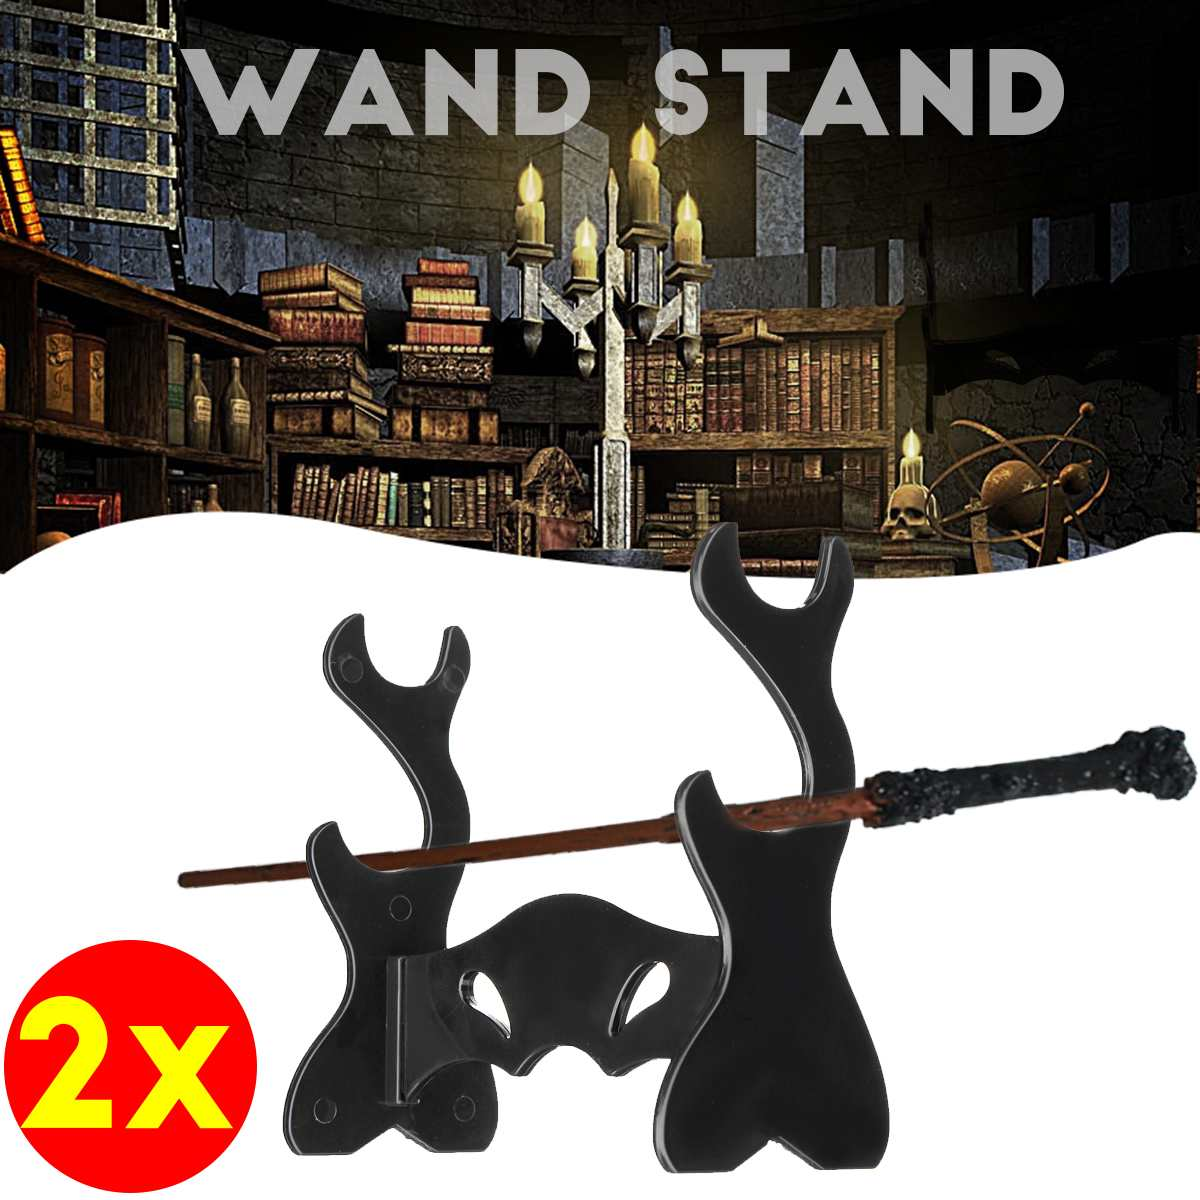 2pcs Two Tiers Holder Wand Display Stand/Acrylic Bracket Rack For Dumbledore Hermoine Magic Wand Collection Weasley Twins